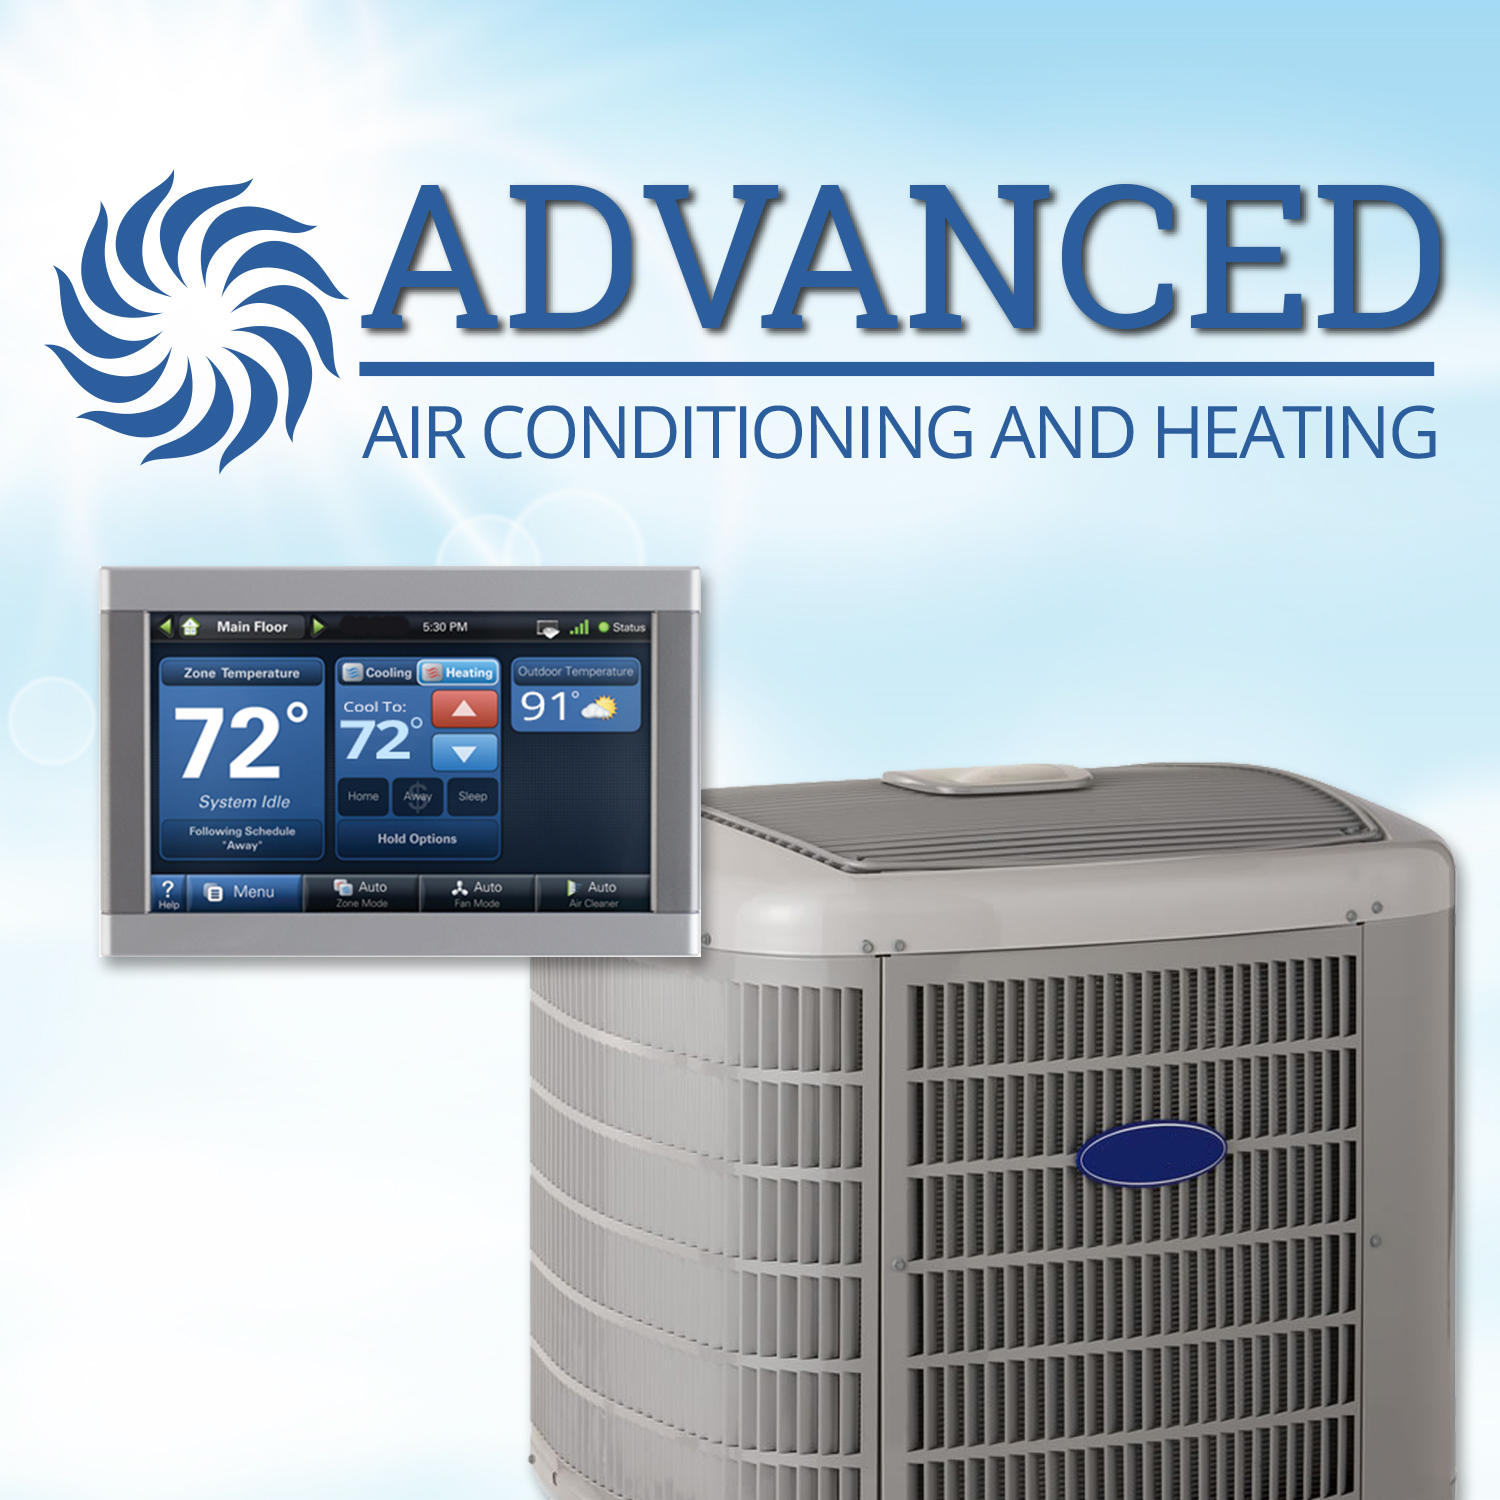 Advanced Air Conditioning and Heating